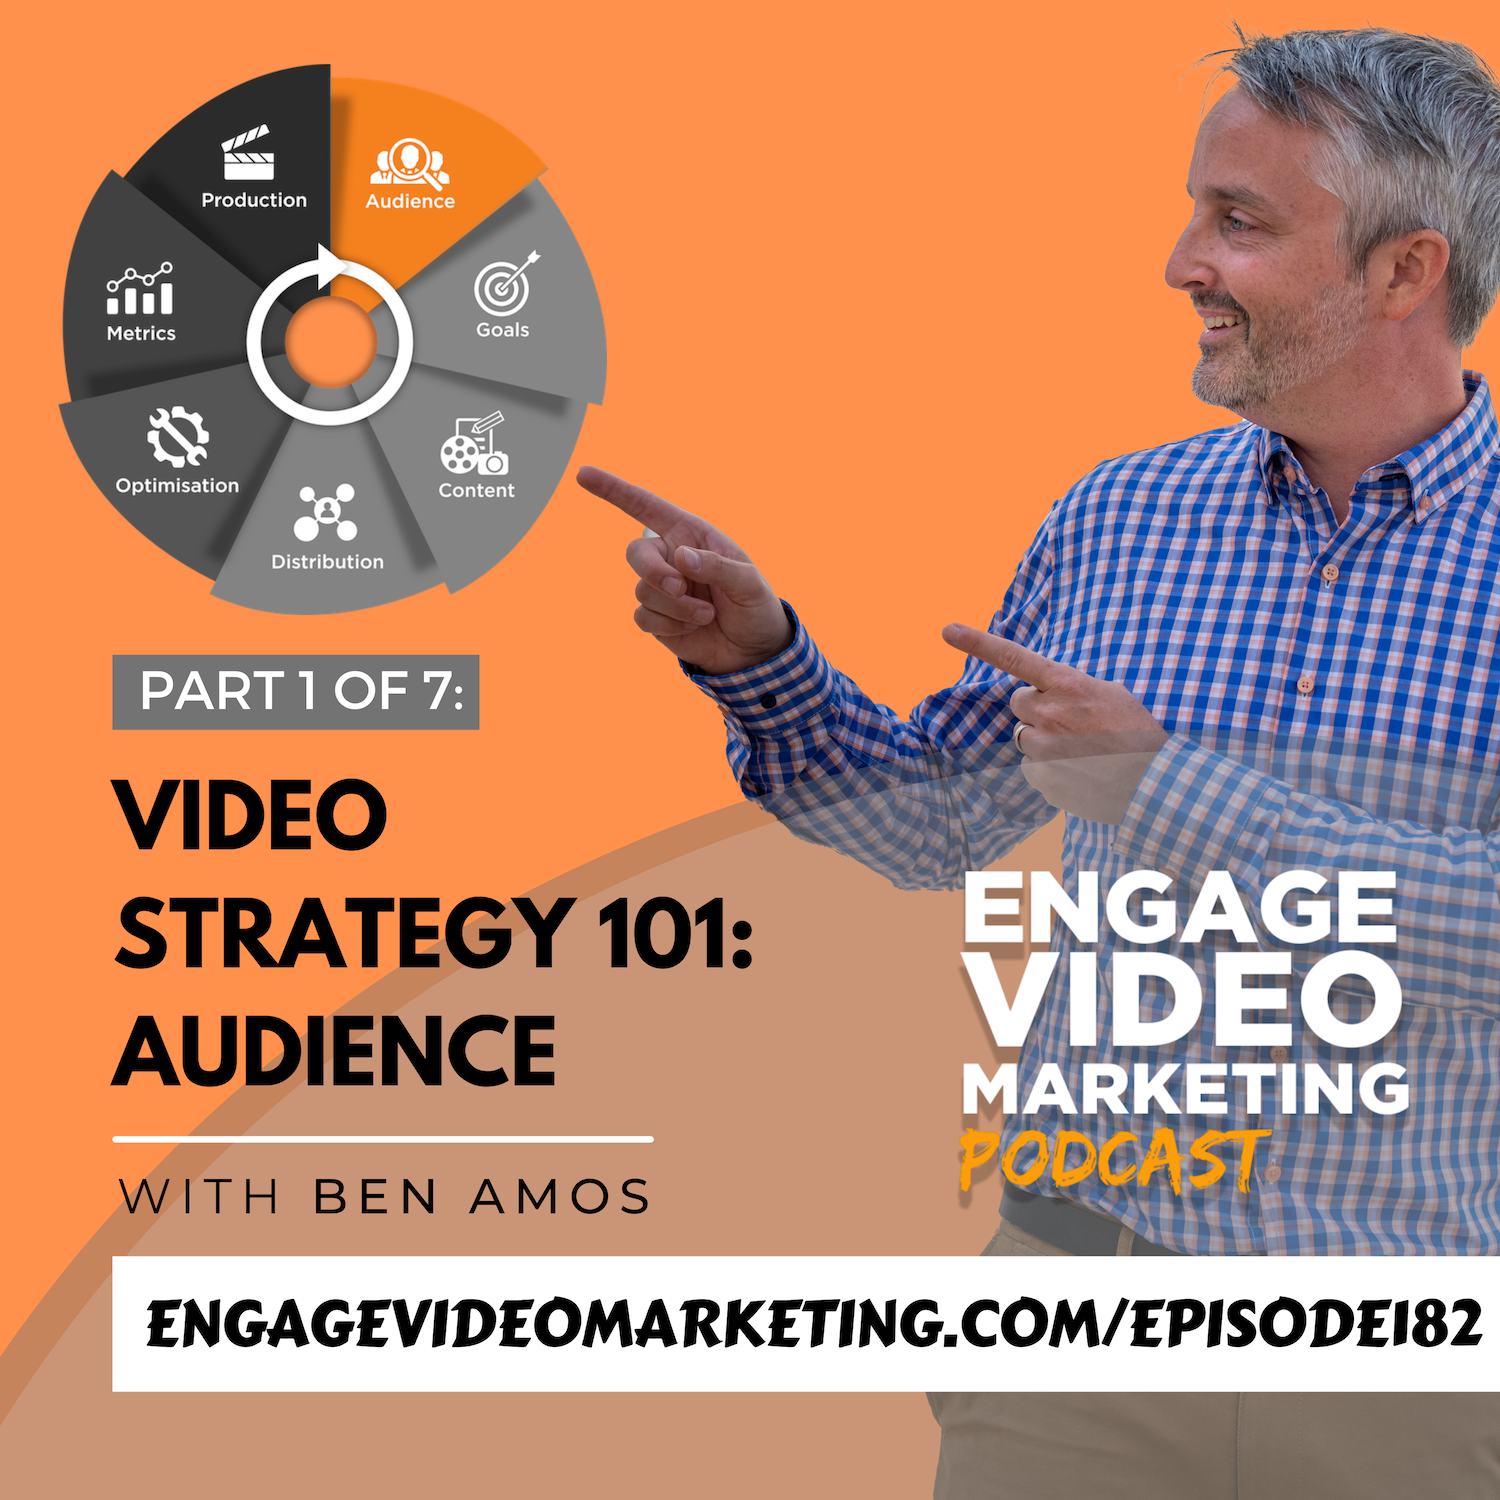 Video Strategy 101: Audience